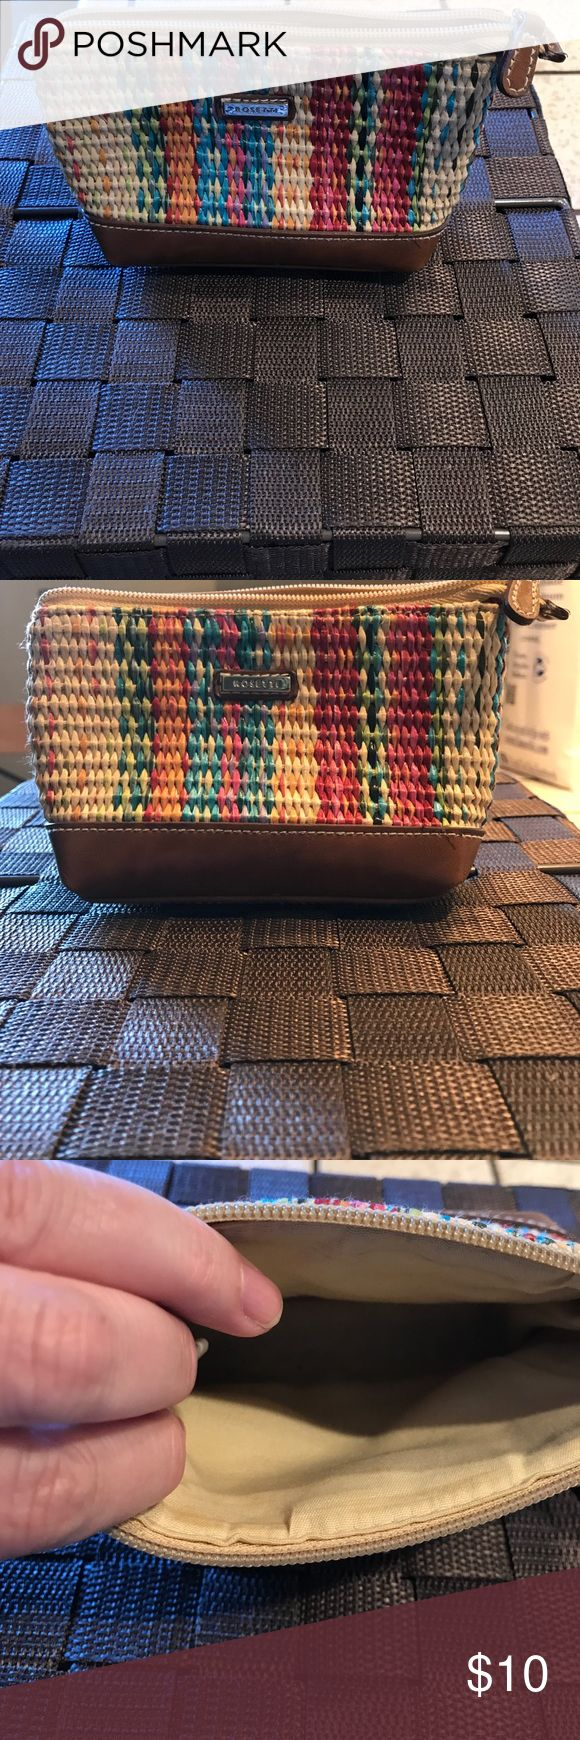 Very cute wicker coin purse! Wicket liners coin purse, colors go with everything! Rosetti Bags Wallets